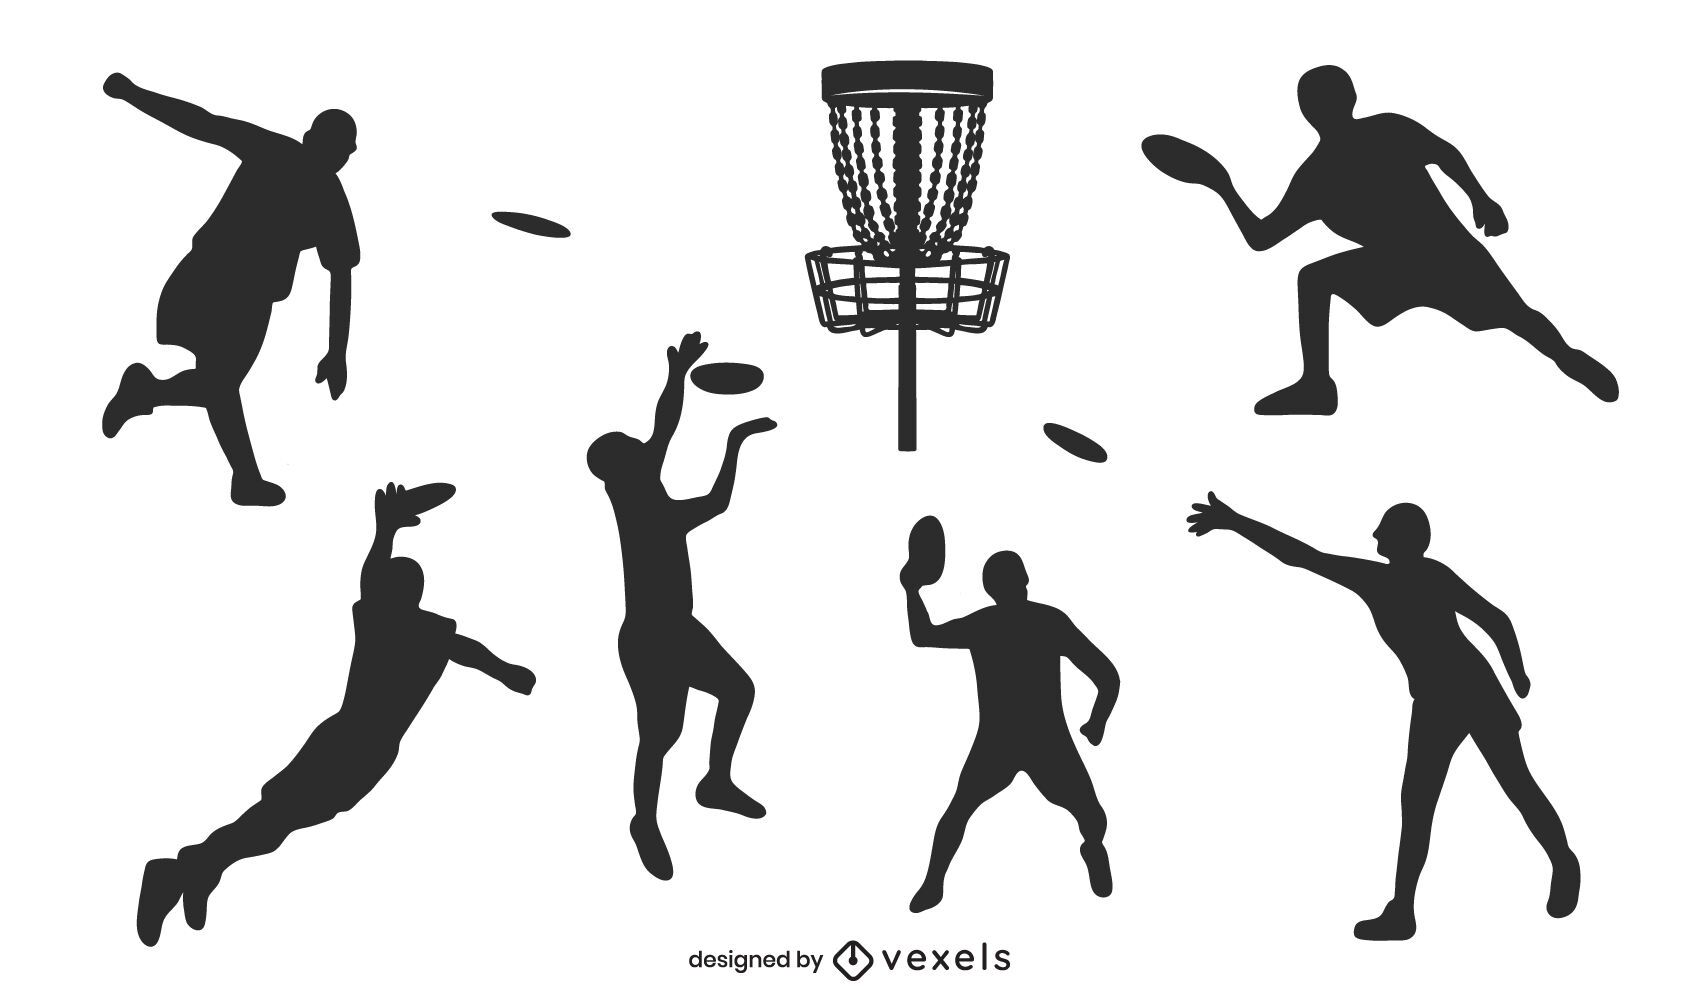 Disc golf players silhouette design